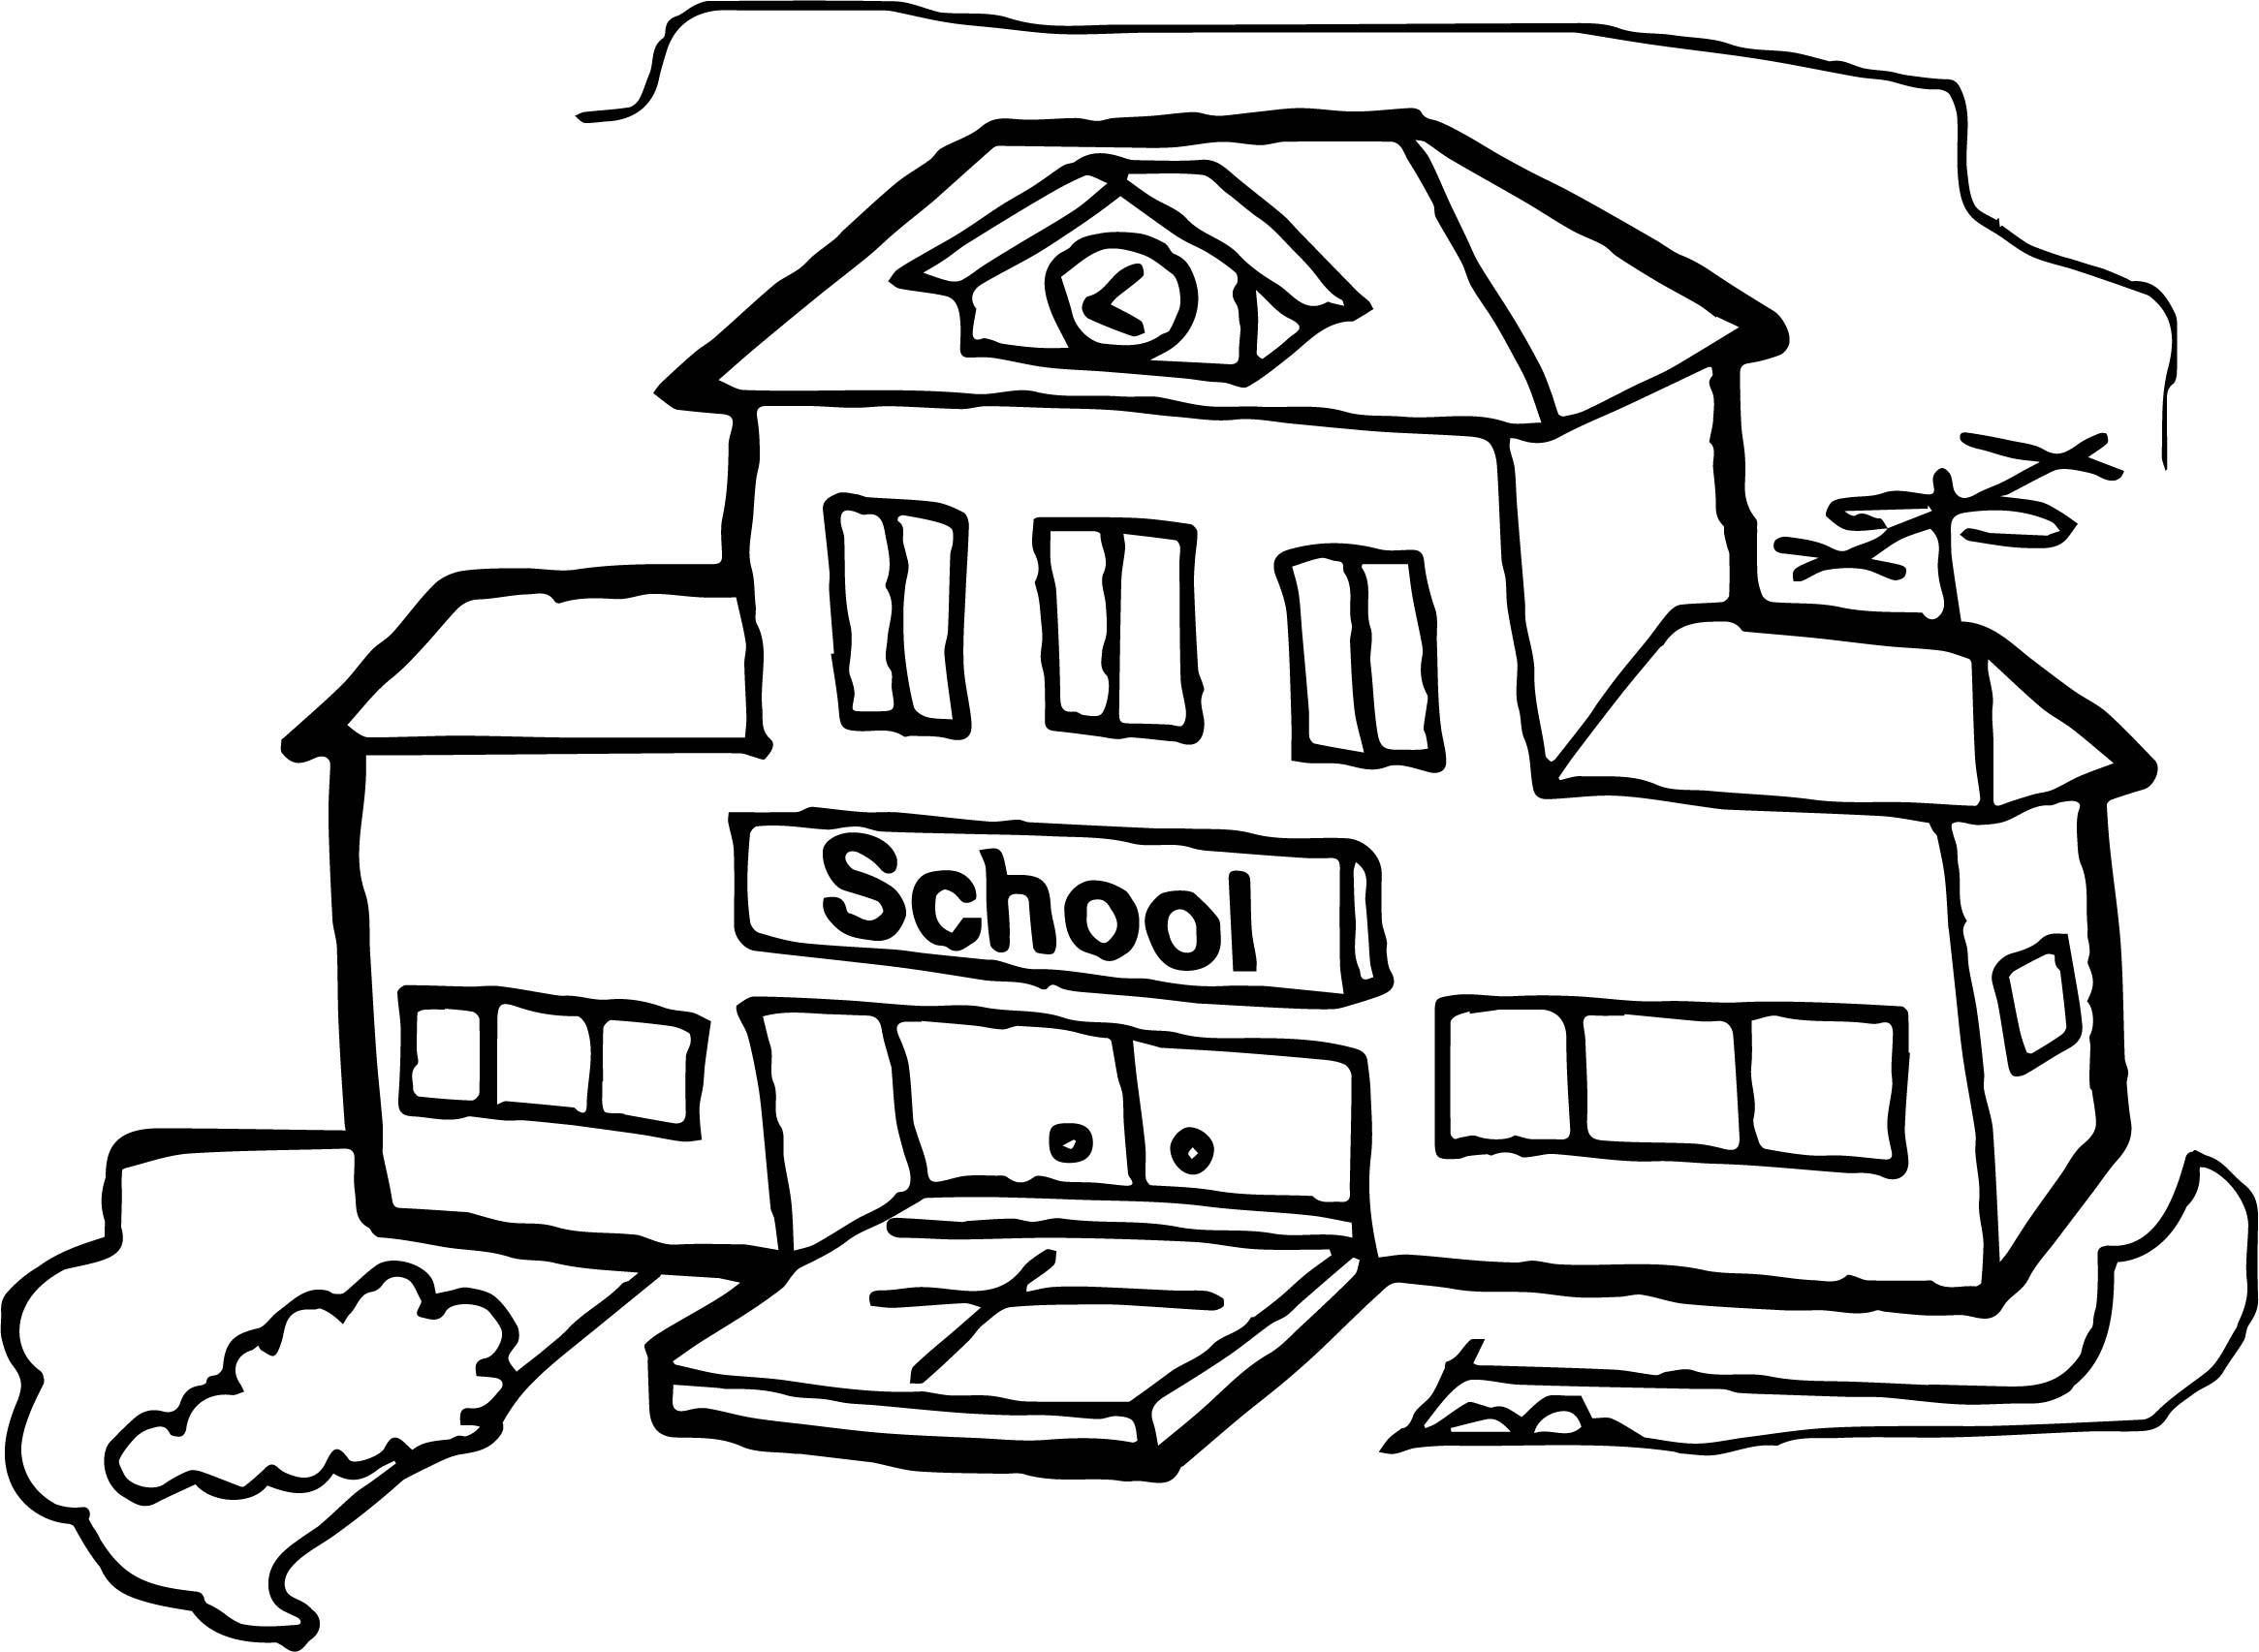 School Line Drawing At Getdrawingscom Free For Personal